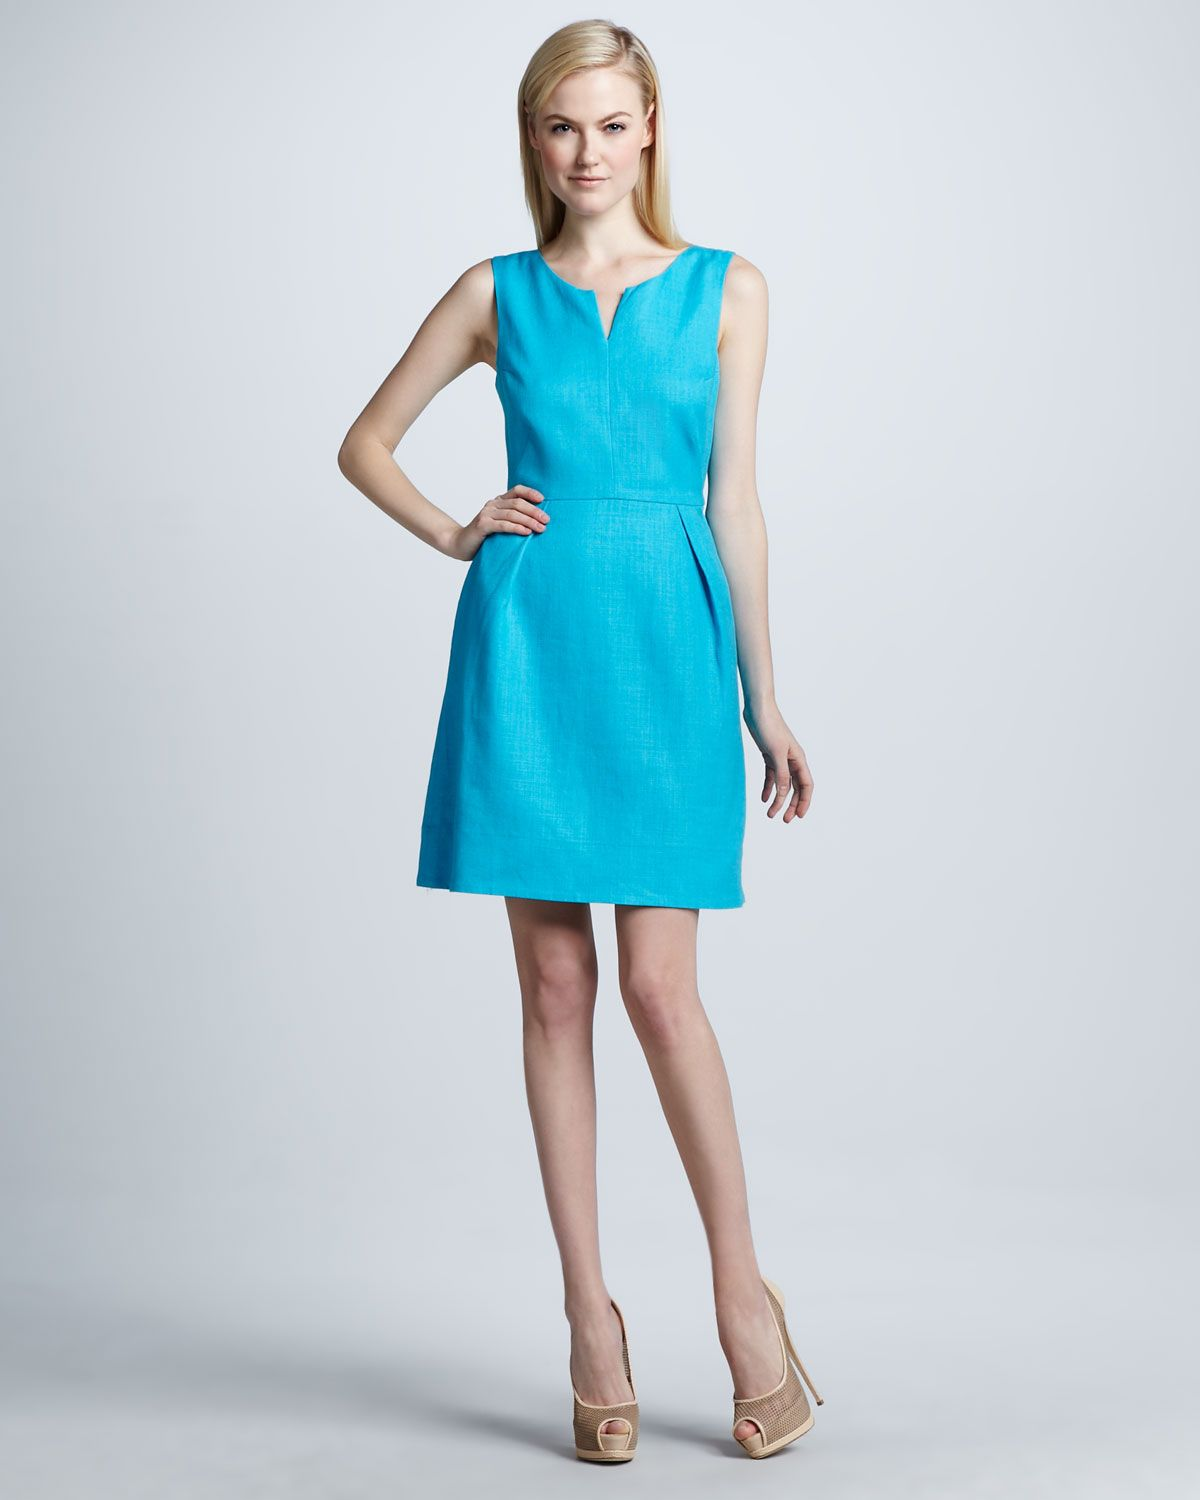 Pale pink dress for wedding guest  kate spade new york cleo openback blue dress  Neiman Marcus  uc